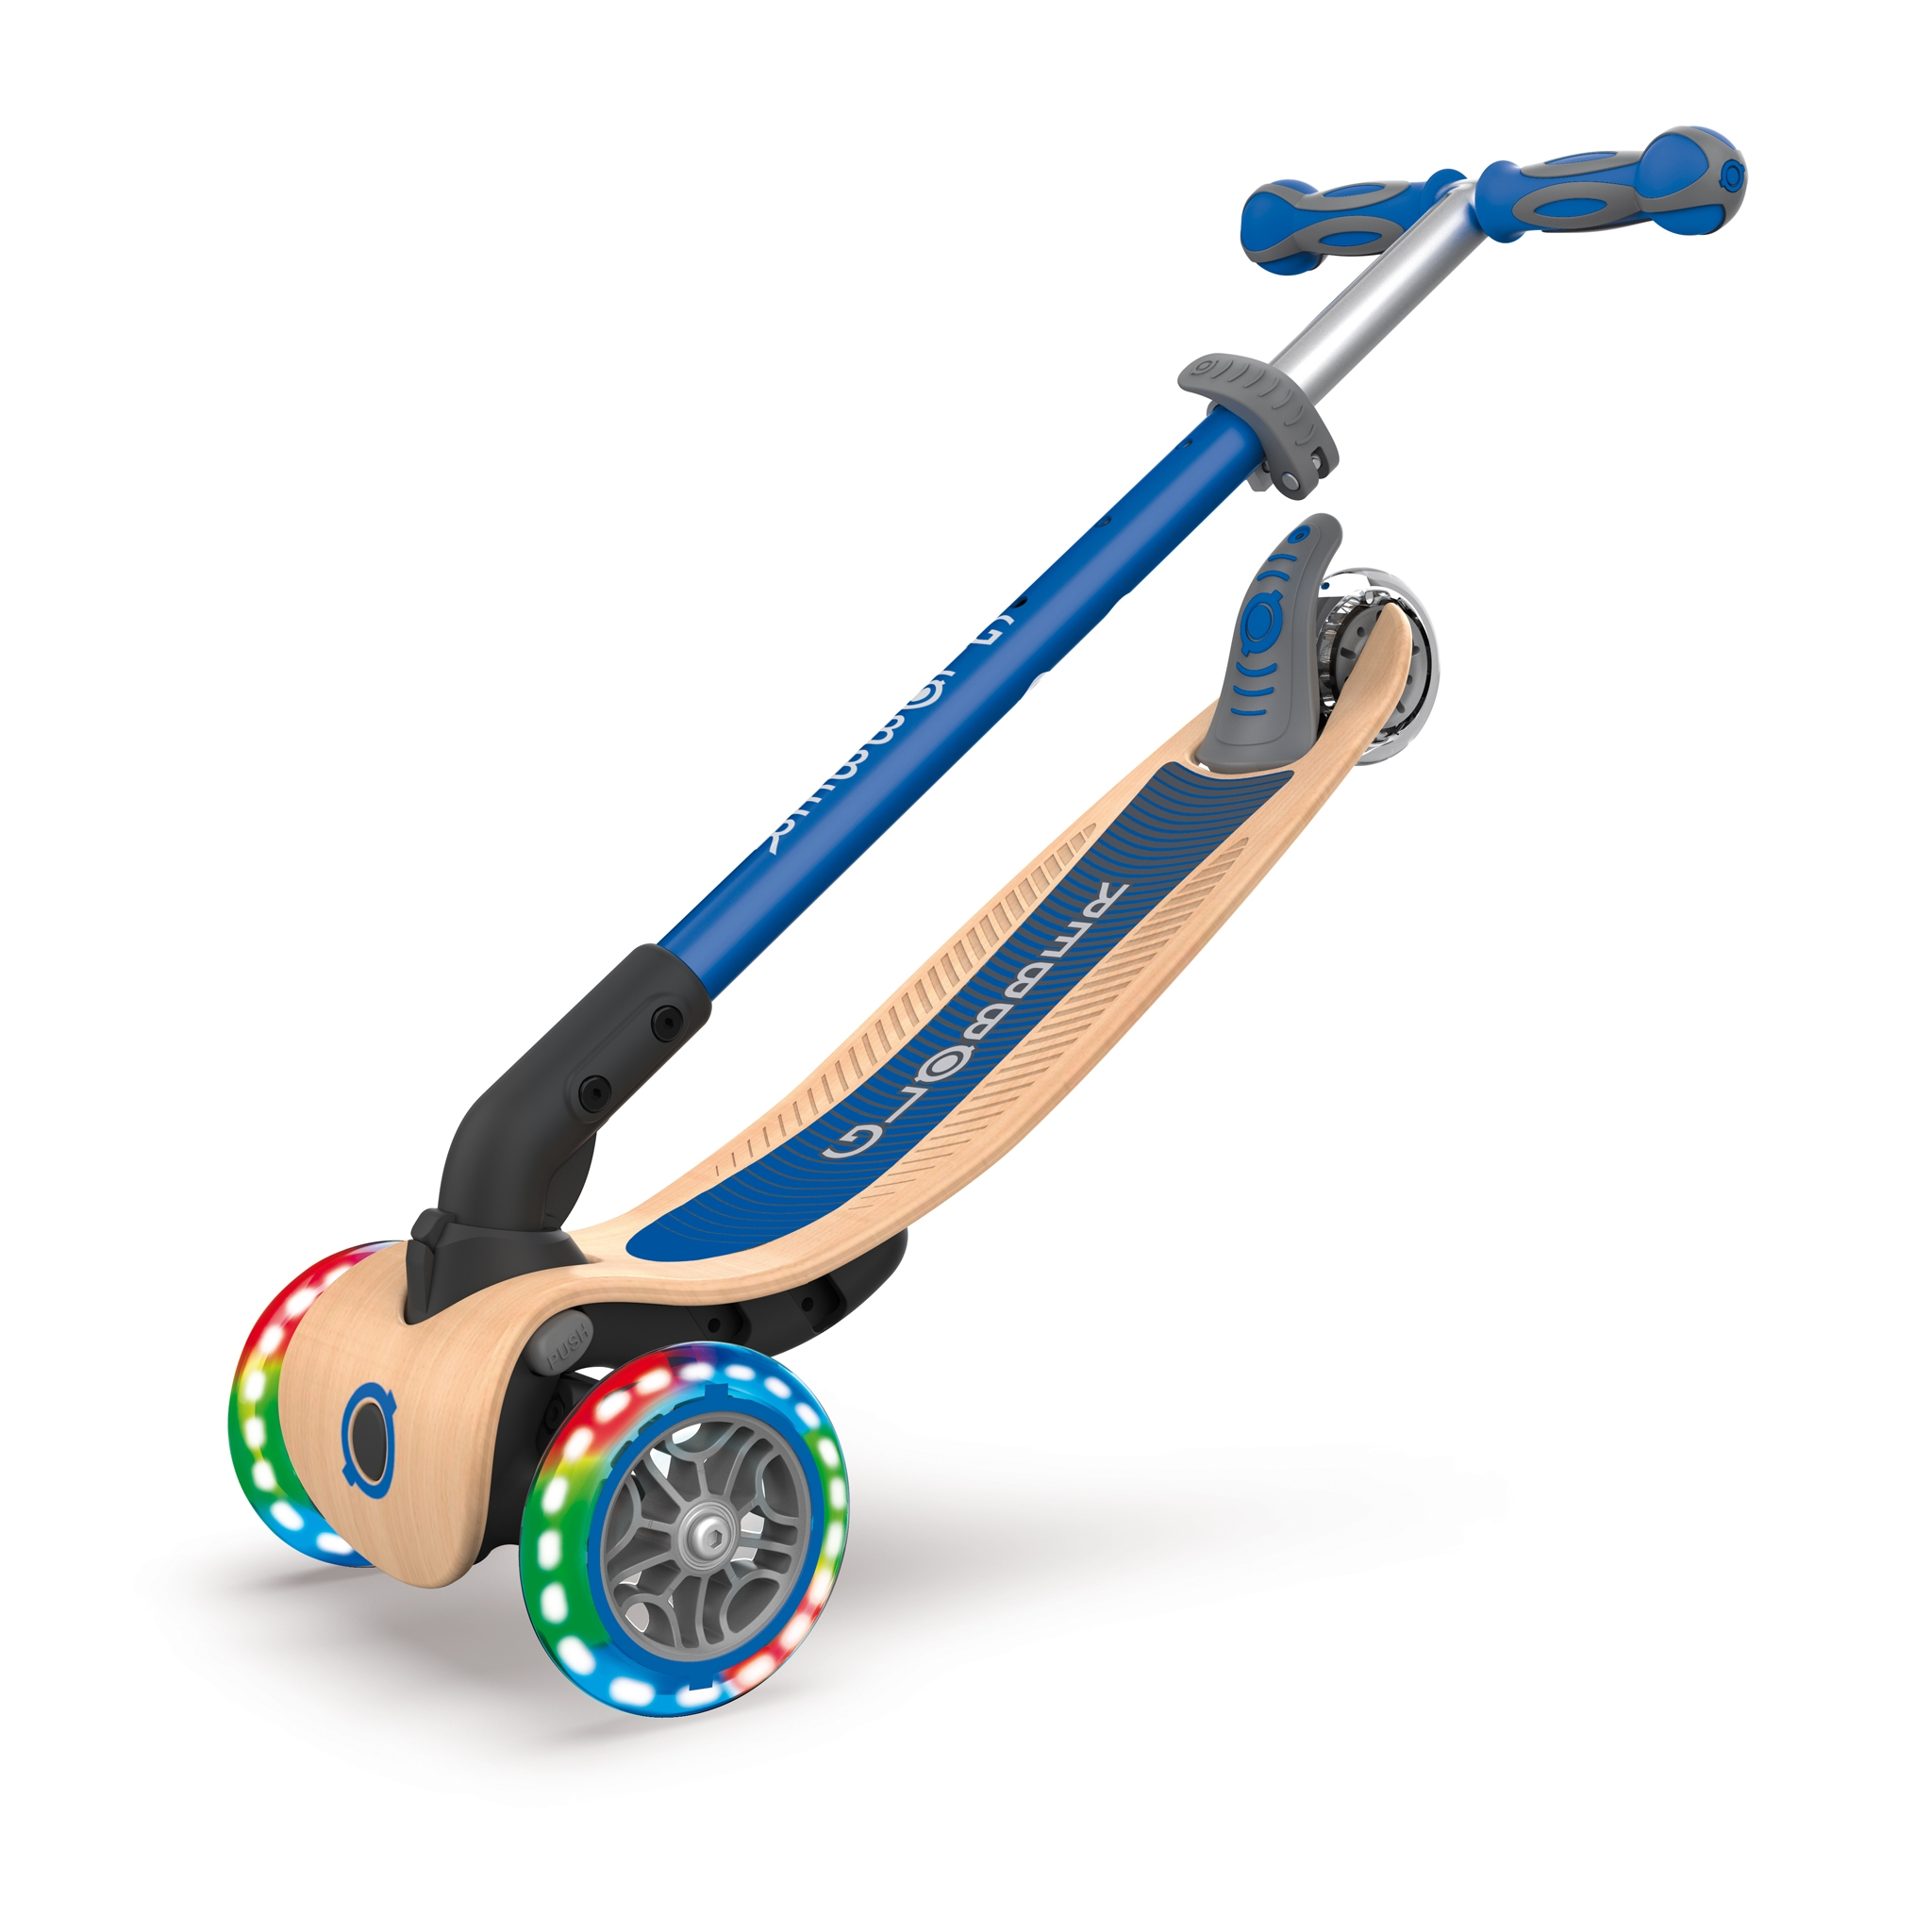 PRIMO-FOLDABLE-WOOD-LIGHTS-3-wheel-foldable-light-up-scooter-with-7-ply-wooden-scooter-deck-trolley-mode-compatible_navy-blue